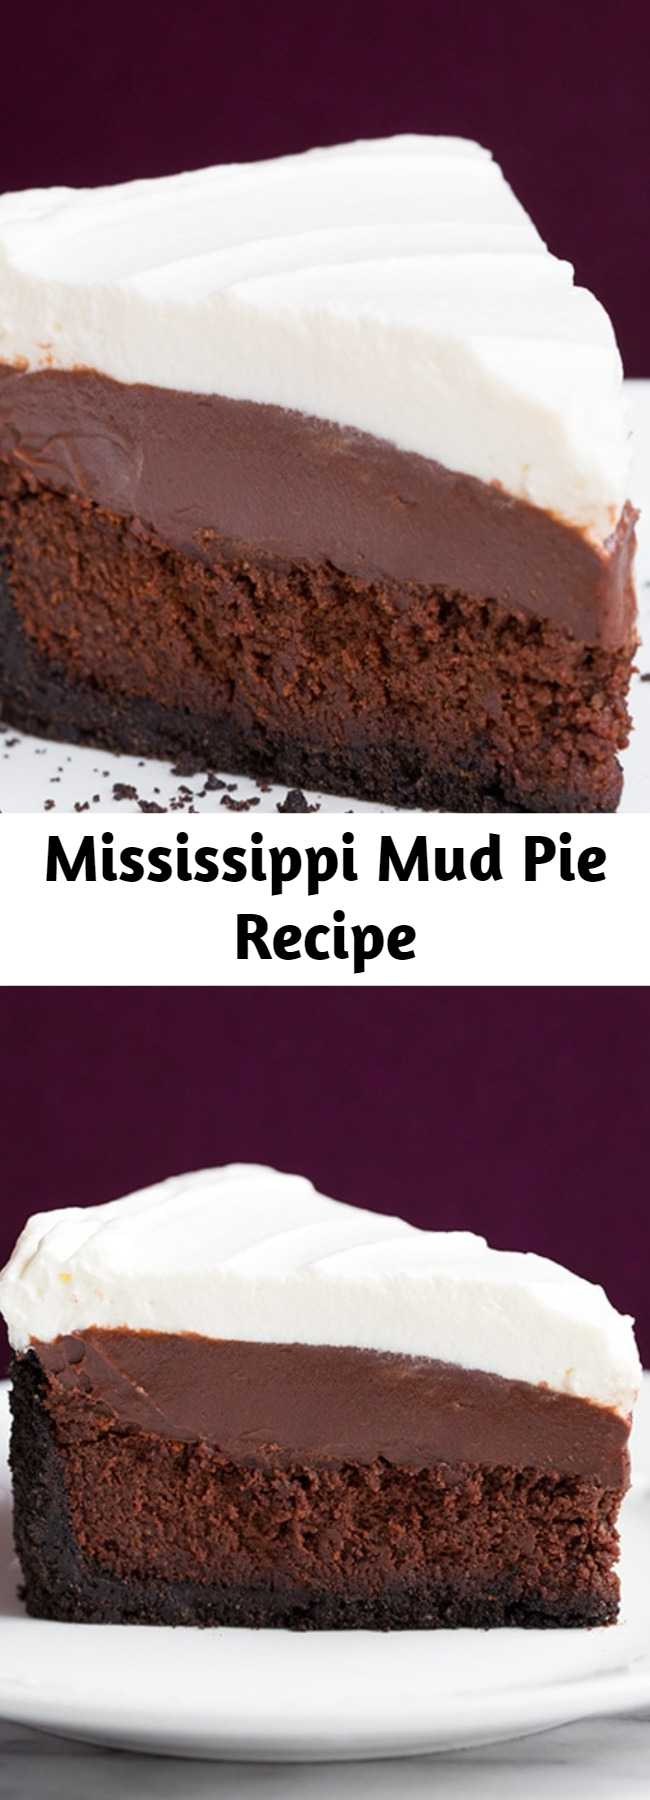 Mississipi Mud Pie – Four layers of utter decadence! You get a crisp Oreo crust, a rich fudgy cake layer, a creamy chocolate pudding and it's finished with a fluffy whipped cream.